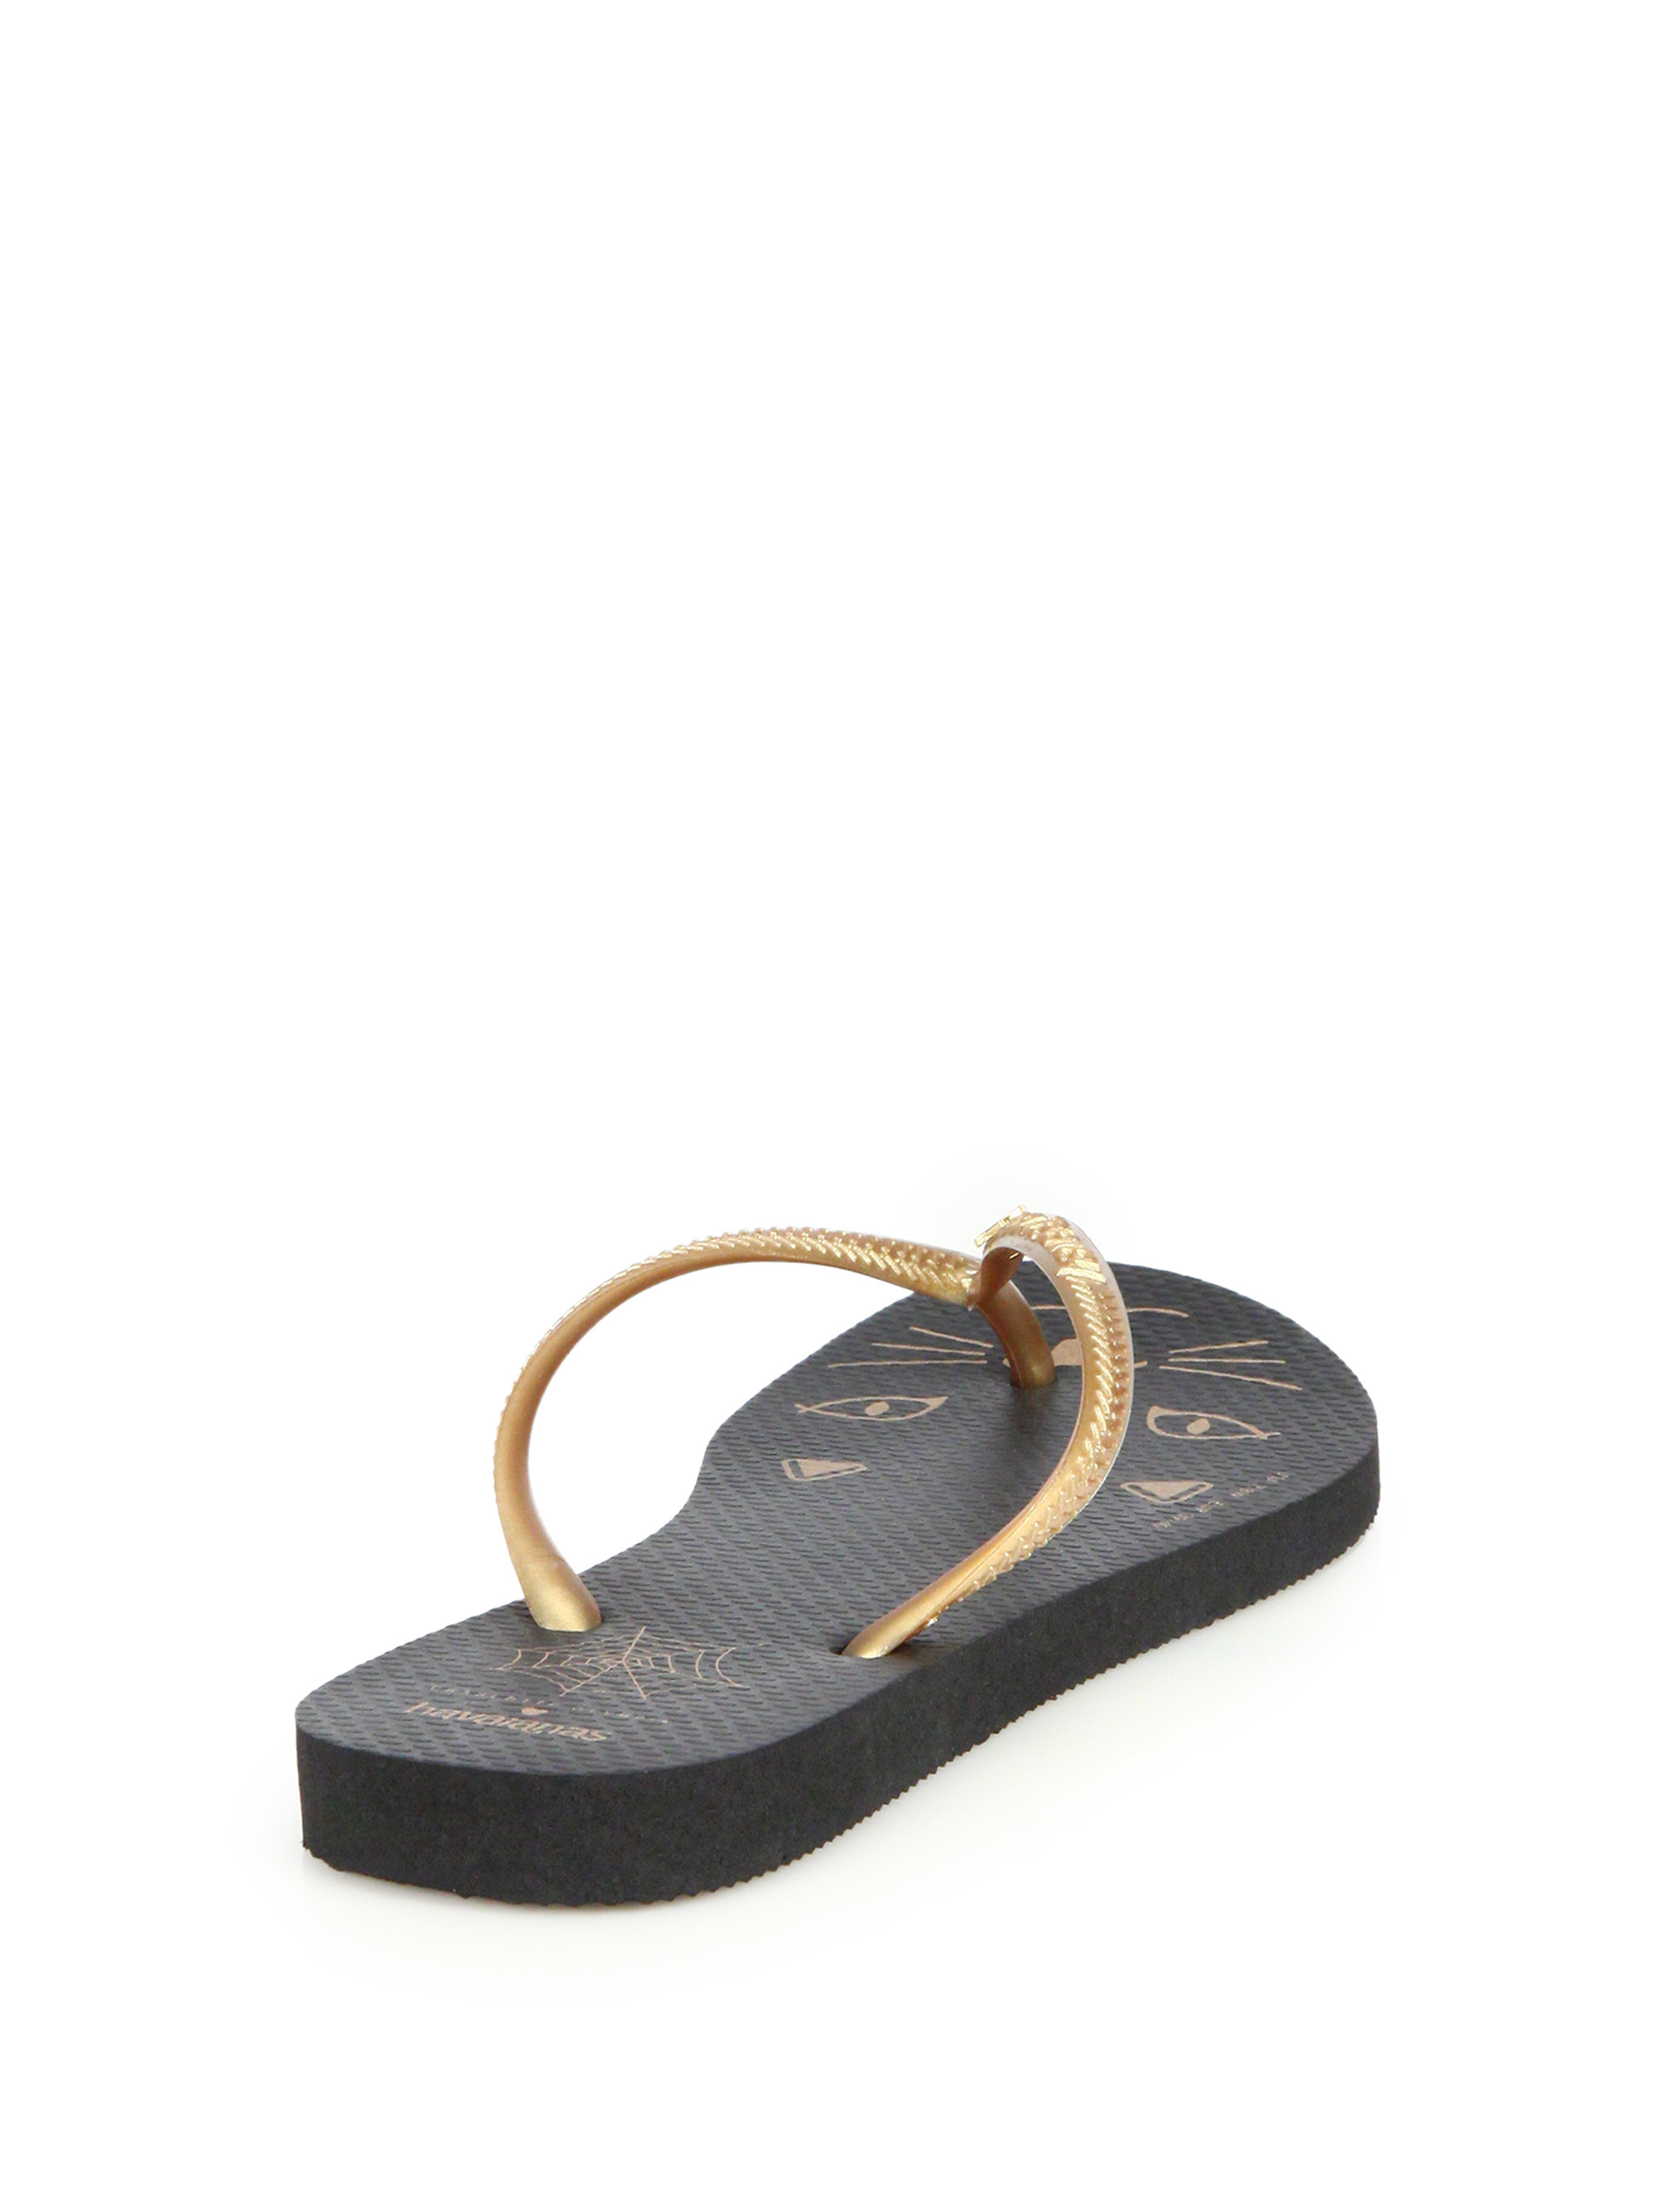 footlocker for sale Jil Sander Beige & Gold Havaianas Edition Kitty Sandals cheap sale ebay low price fee shipping cheap price aagsQkGm